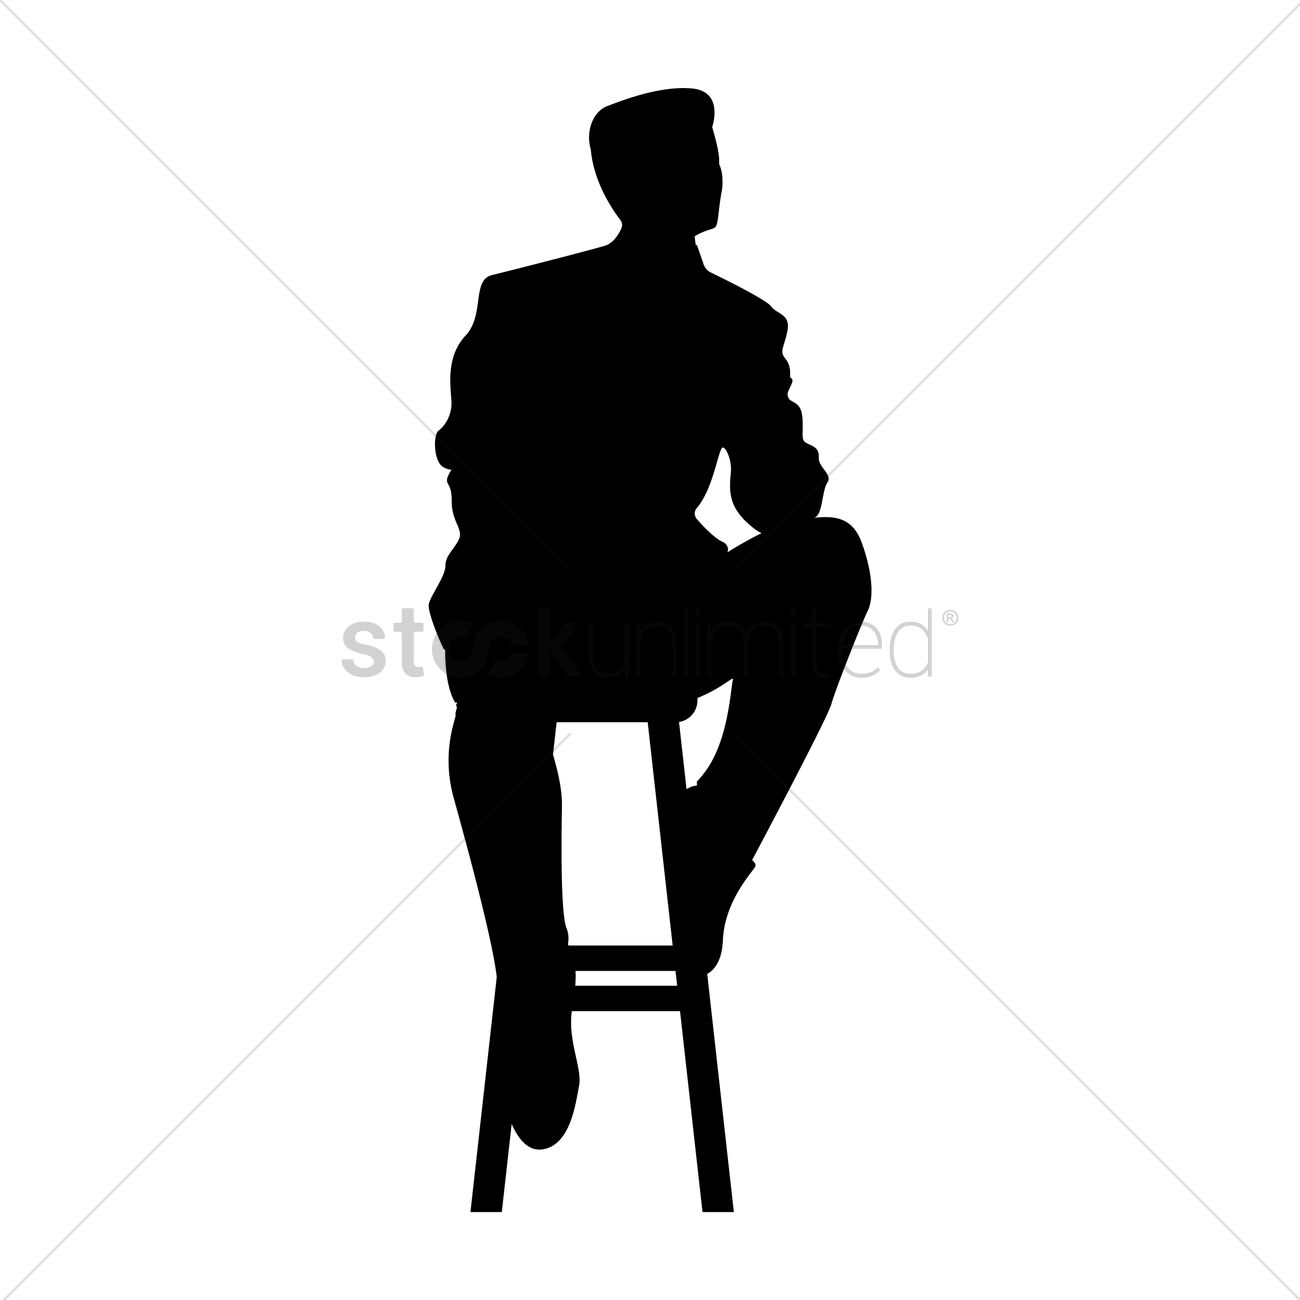 1300x1300 Silhouette Of Man Sitting On Stool Vector Image